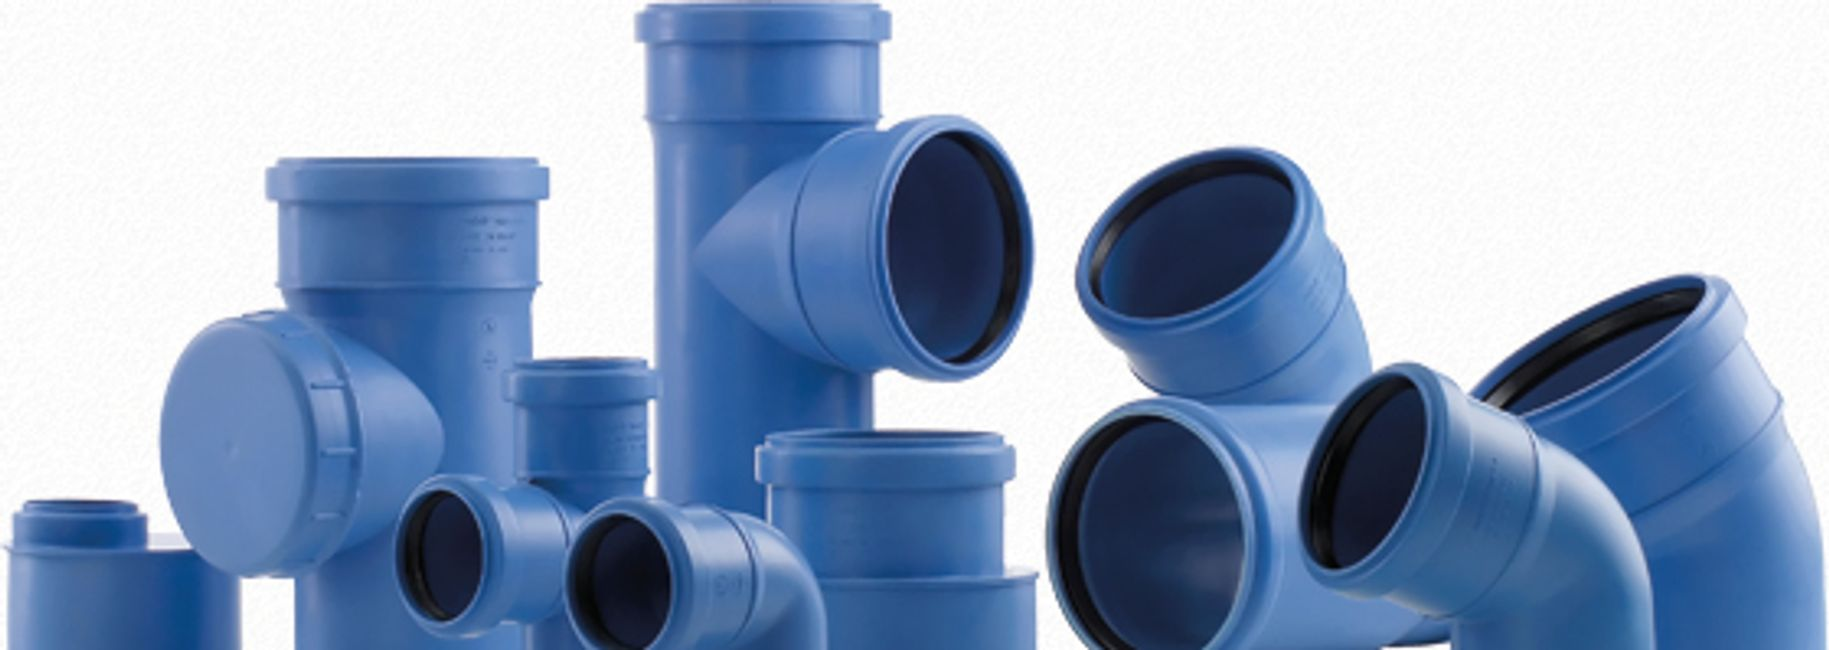 Vacuum Toilets Australia Jets Vacuum Toilets Valsir Australia Pipe Piping Systems